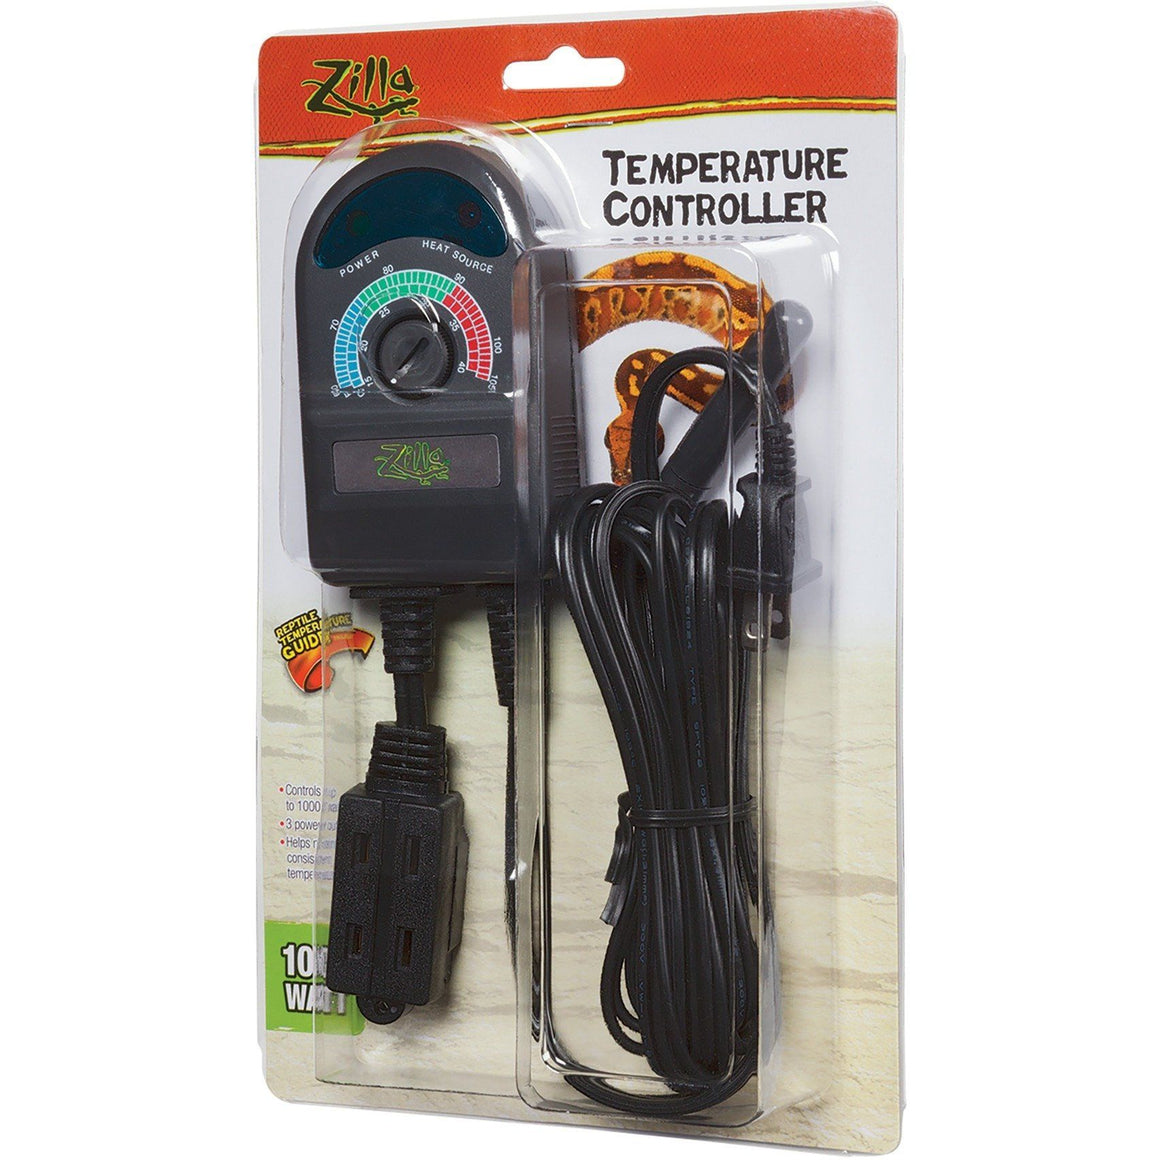 Zilla Temperature Controller 500 Watt